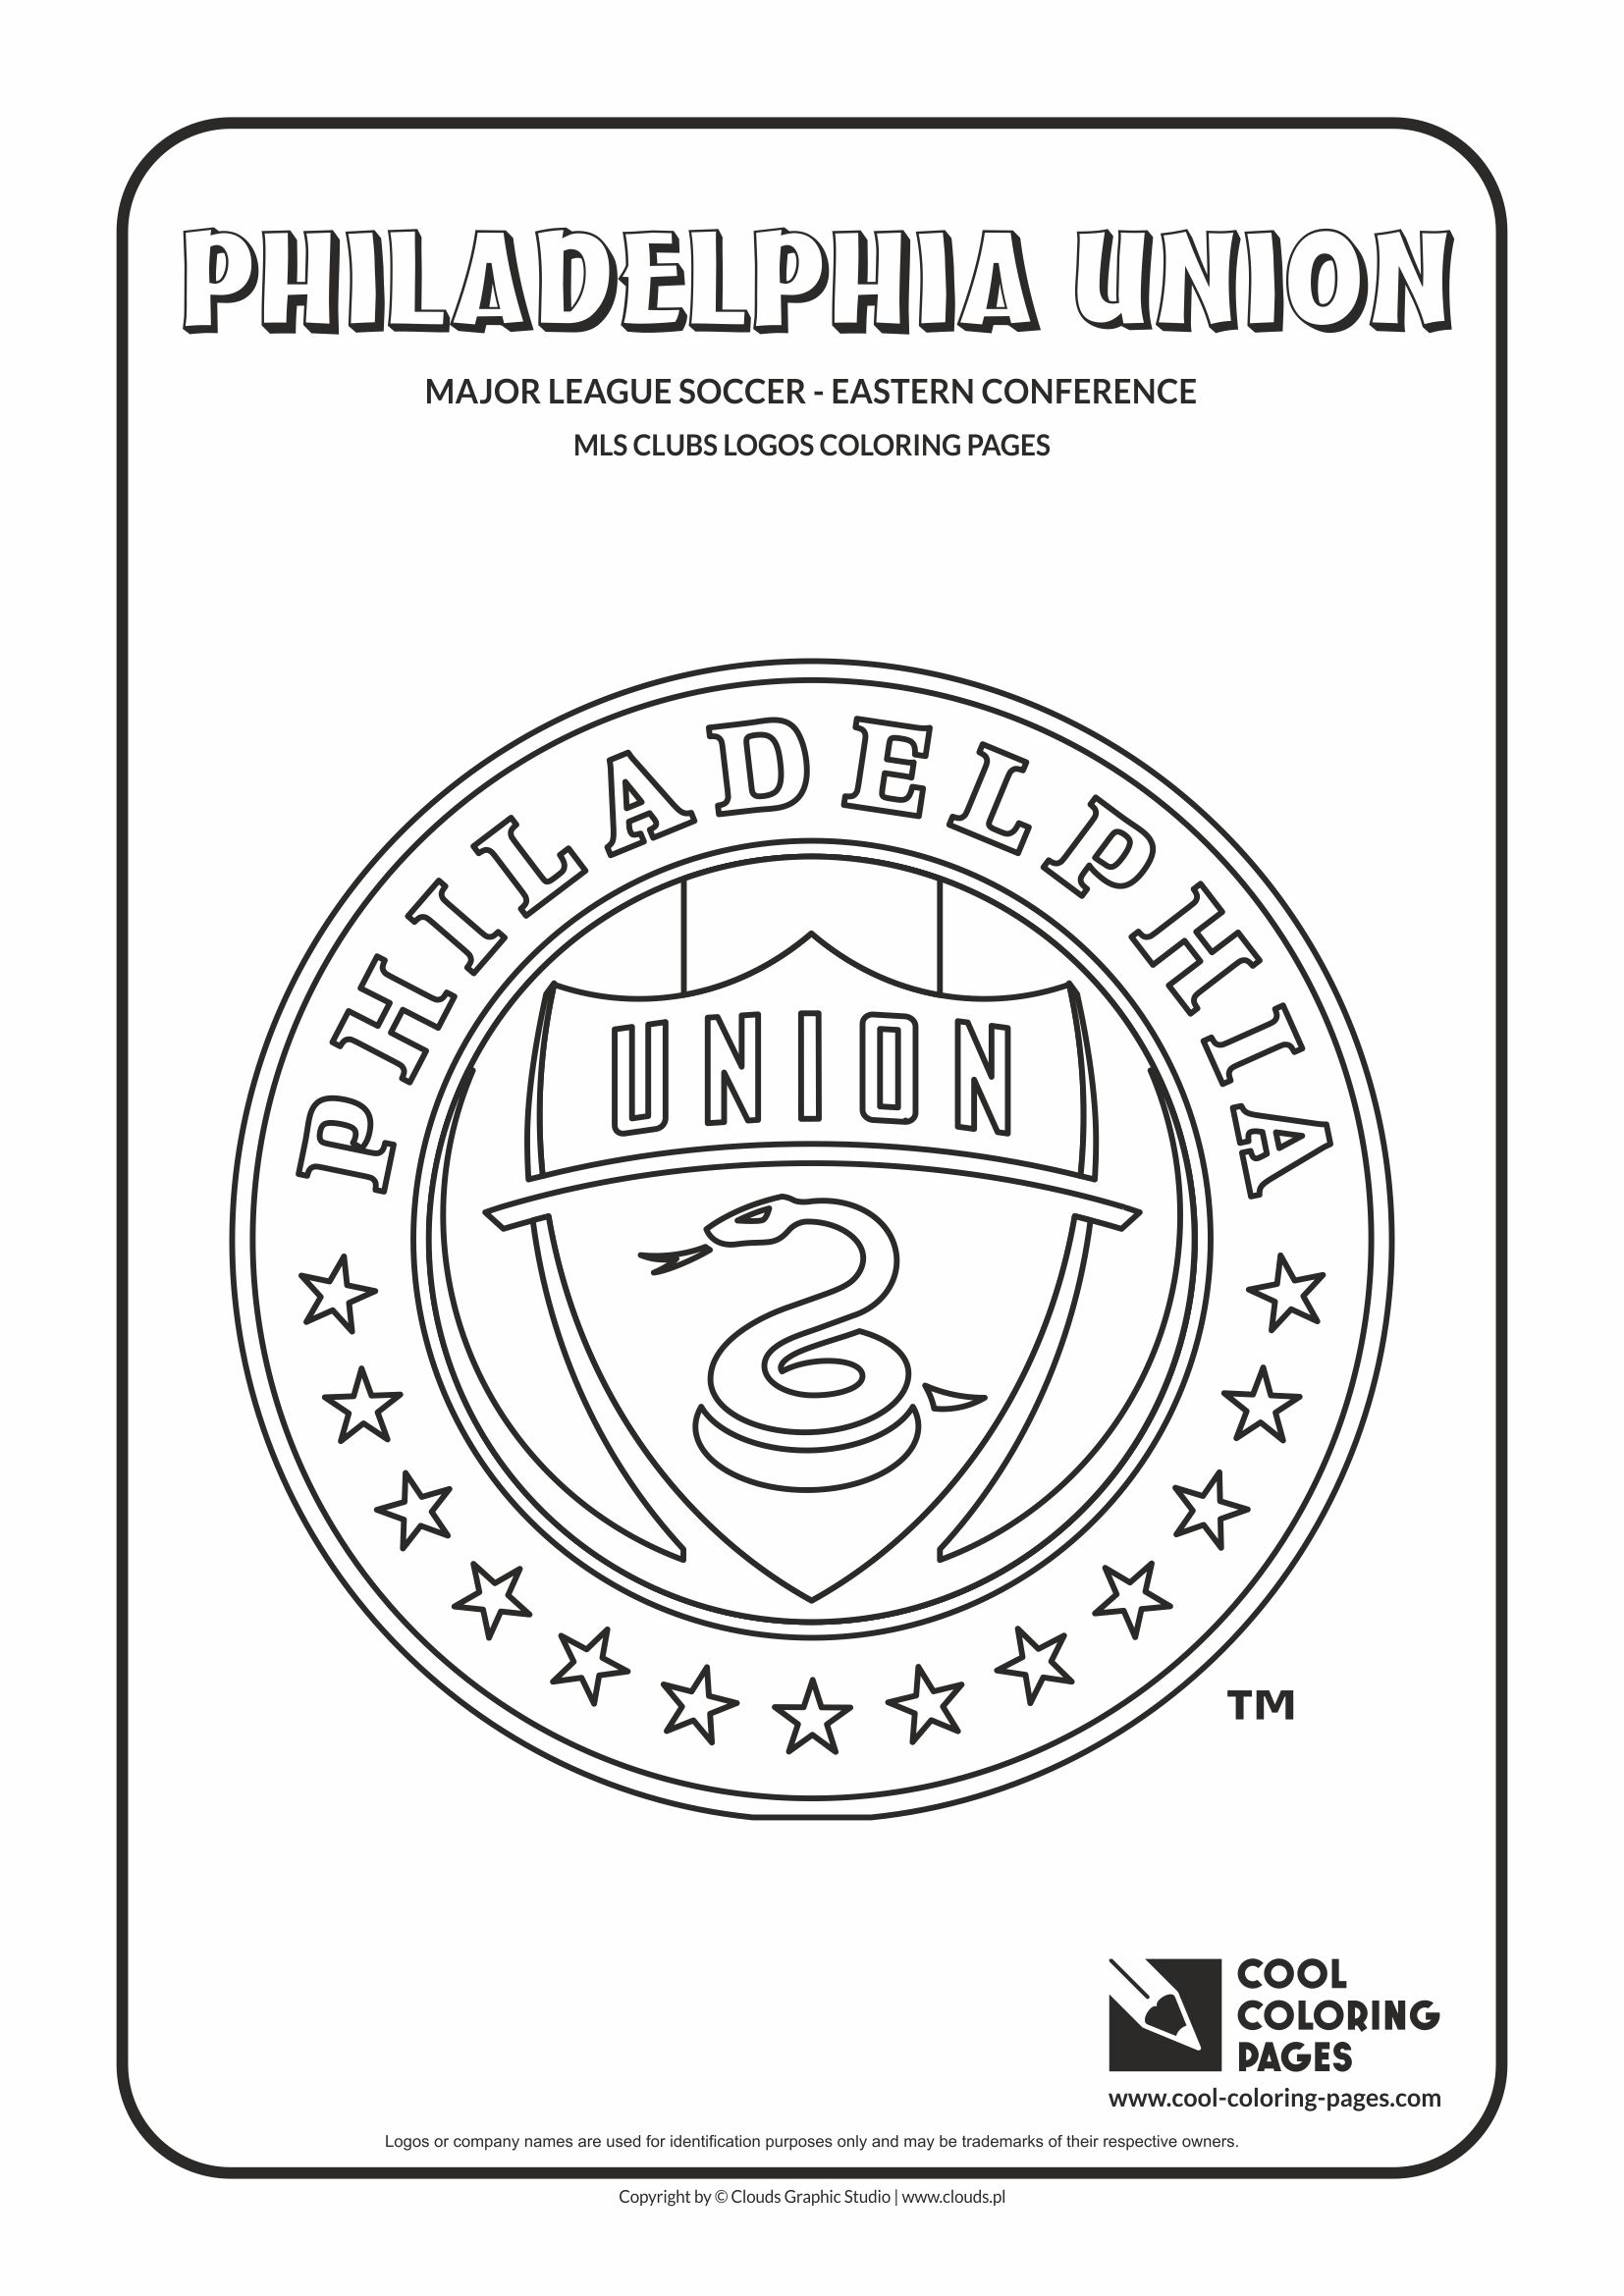 Cool Coloring Pages MLS soccer clubs logos coloring pages